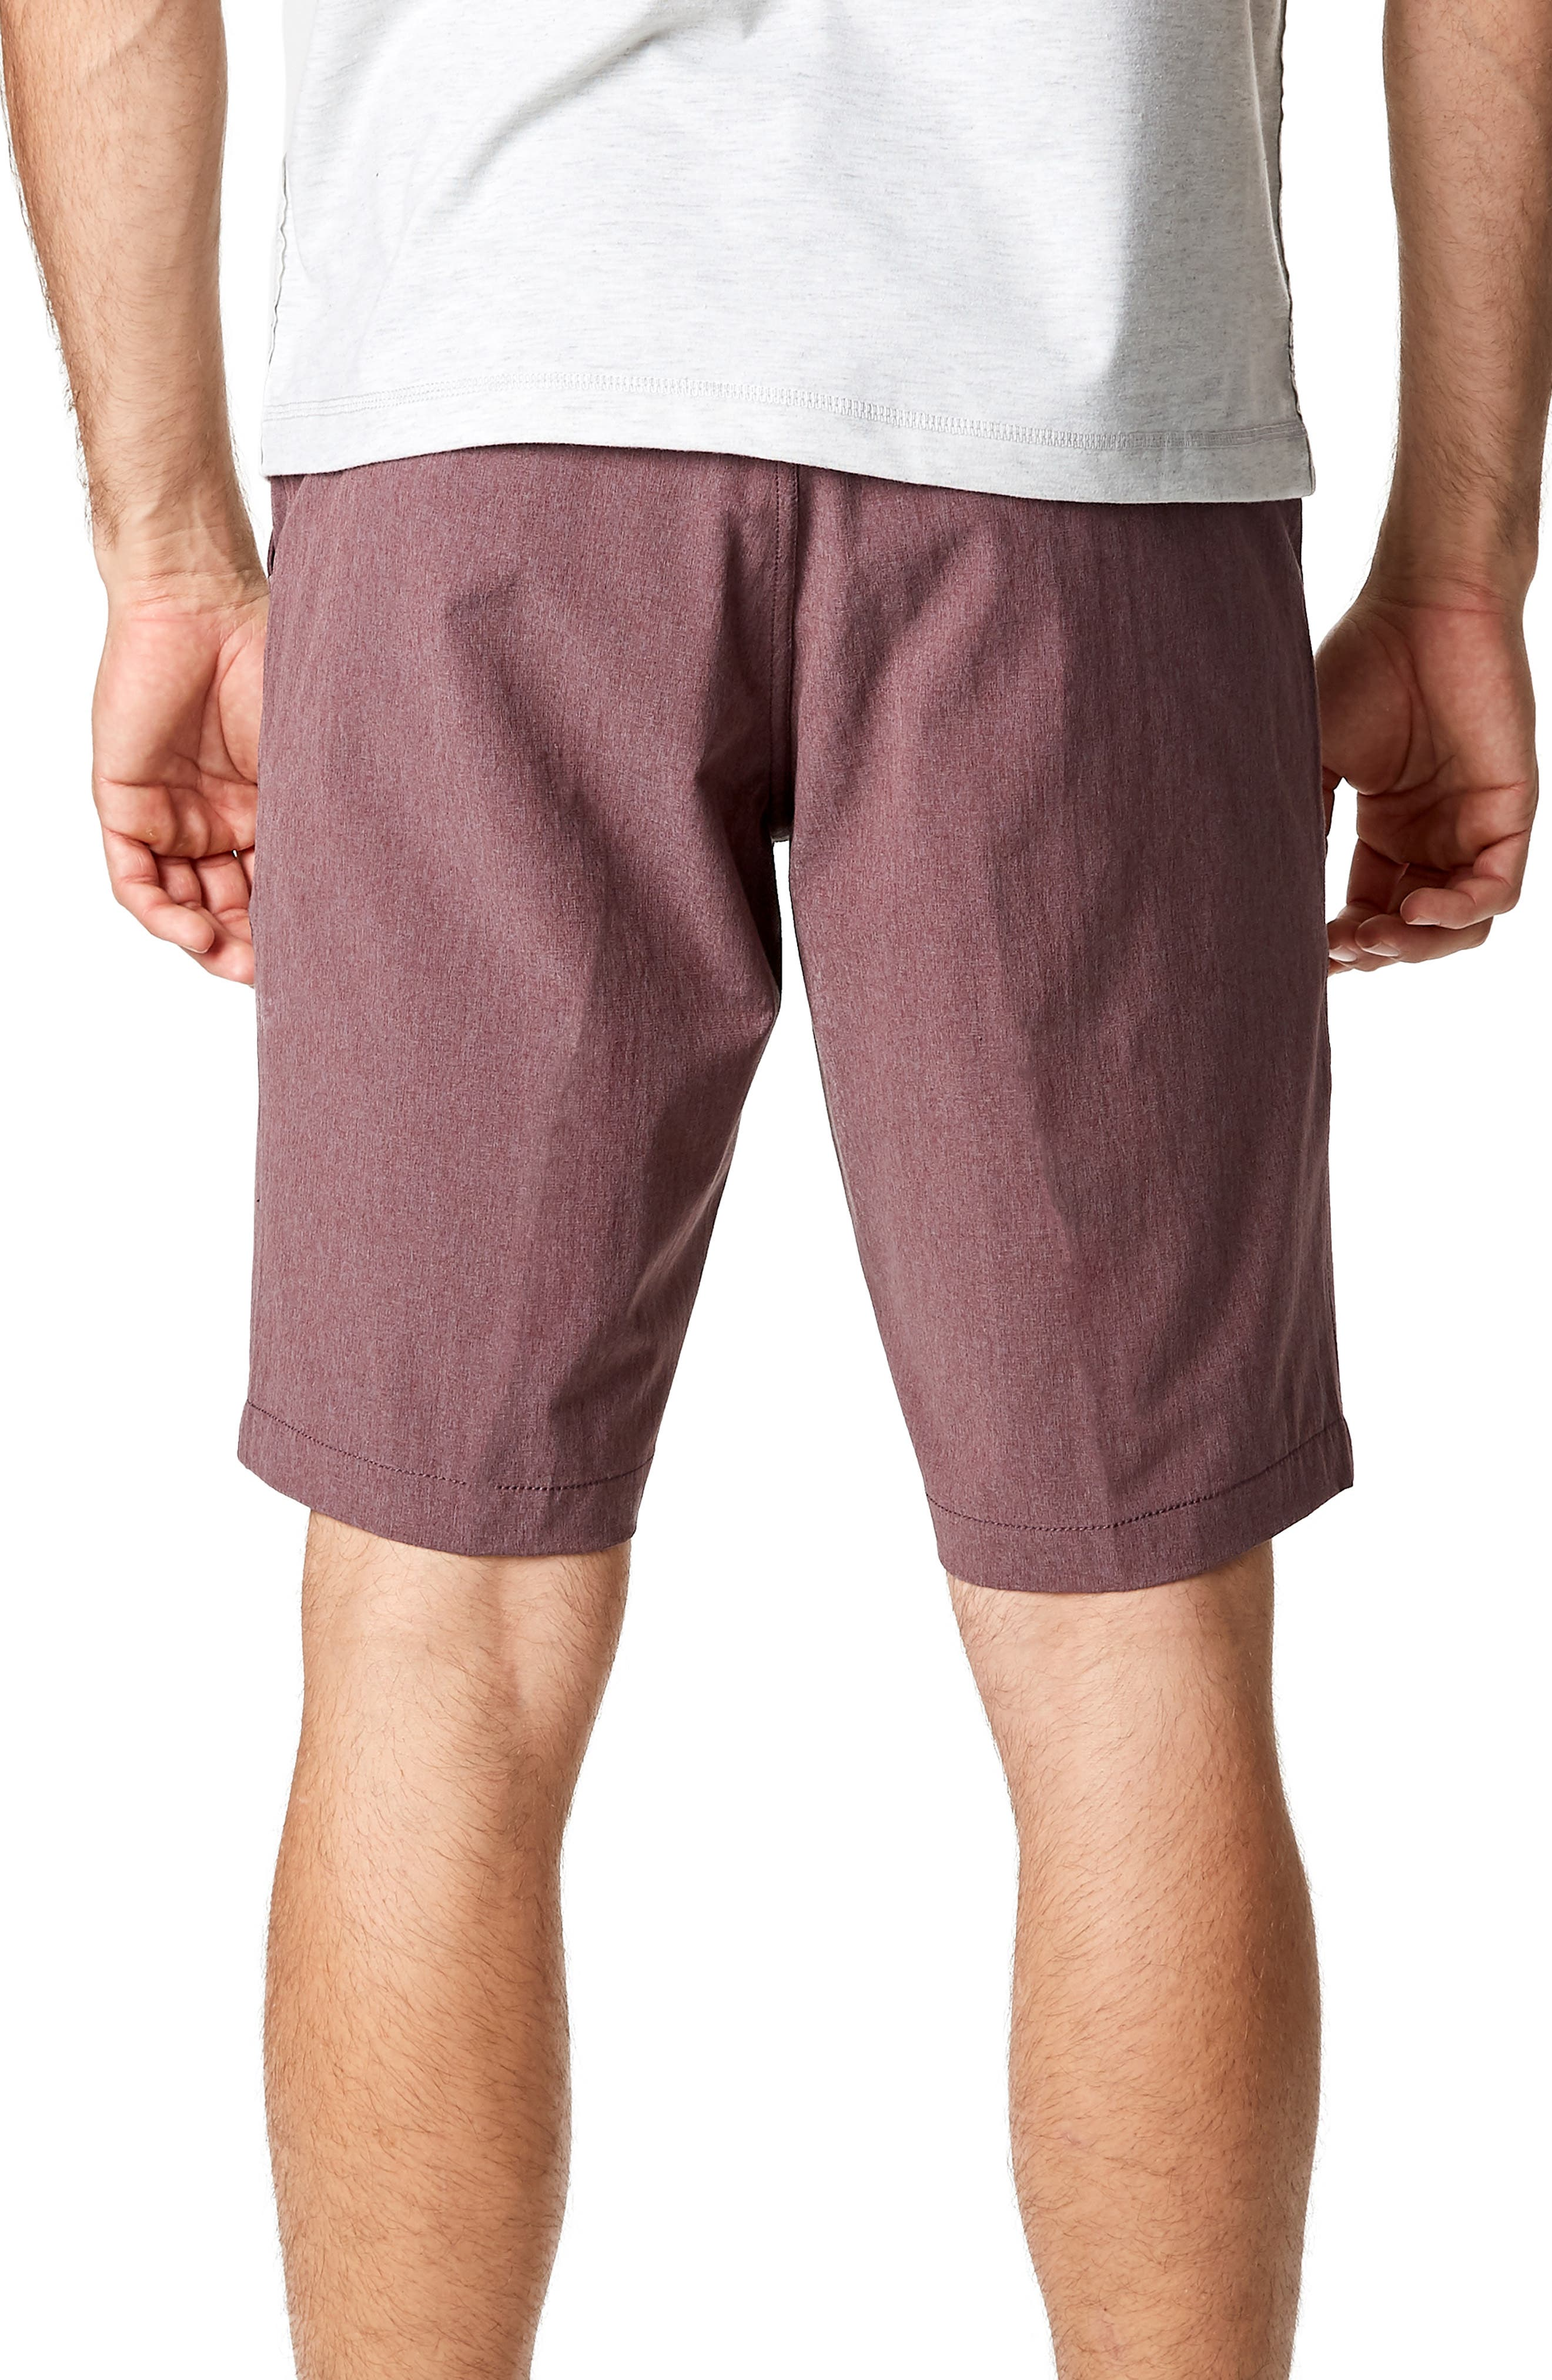 Adrenaline Stretch Shorts,                             Alternate thumbnail 2, color,                             Berry